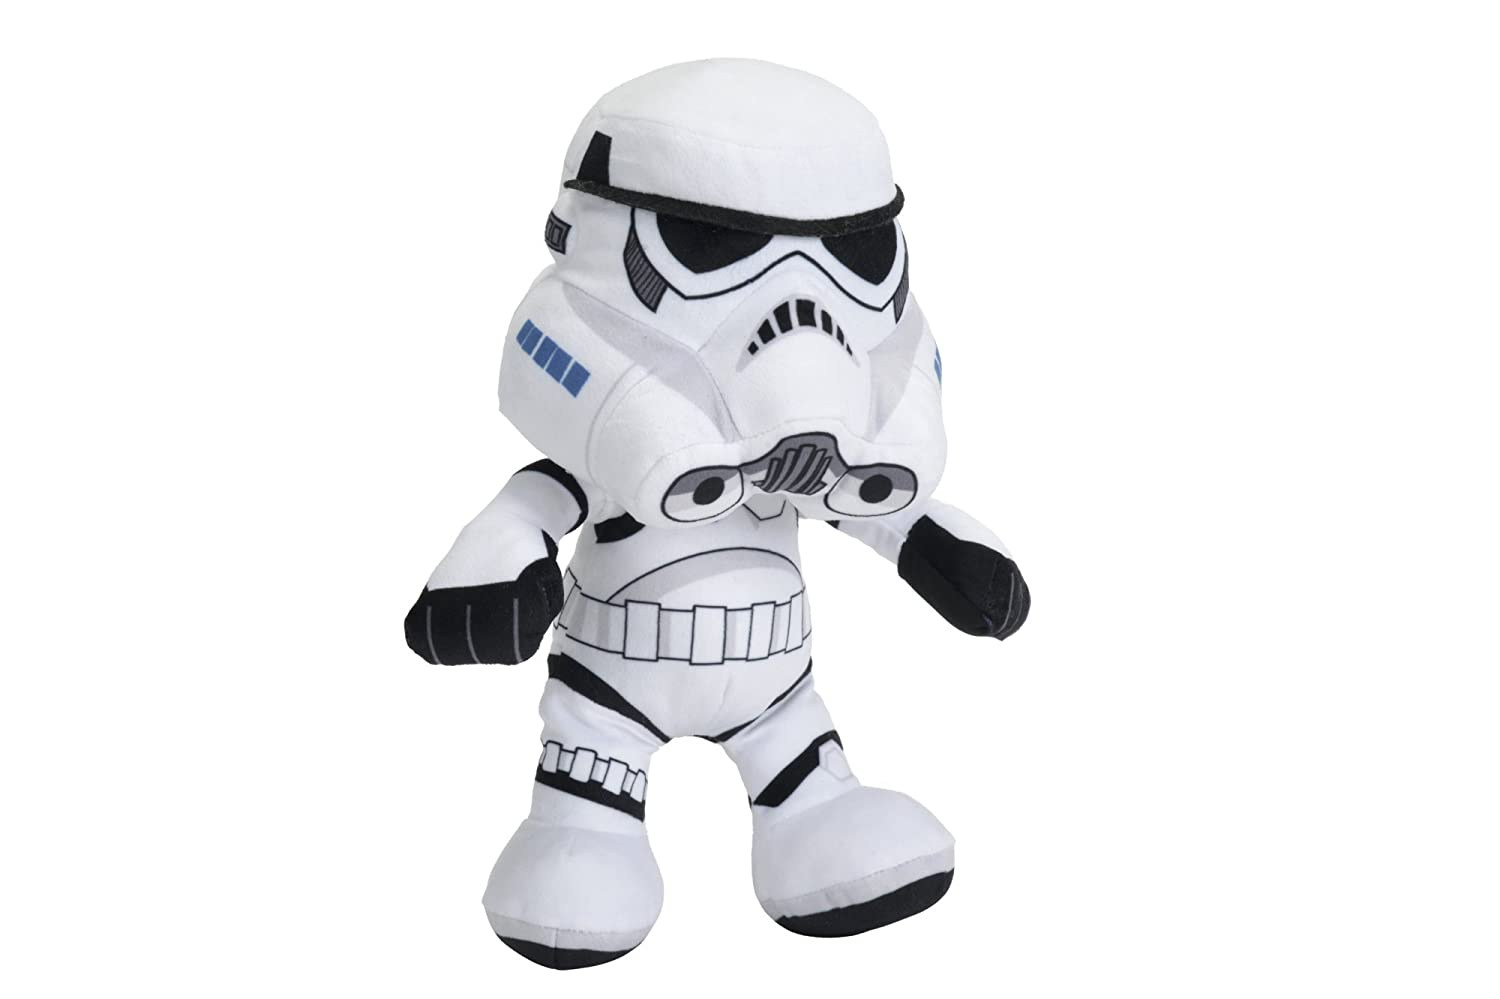 Star Wars : Peluche Soldado Imperial Star Wars